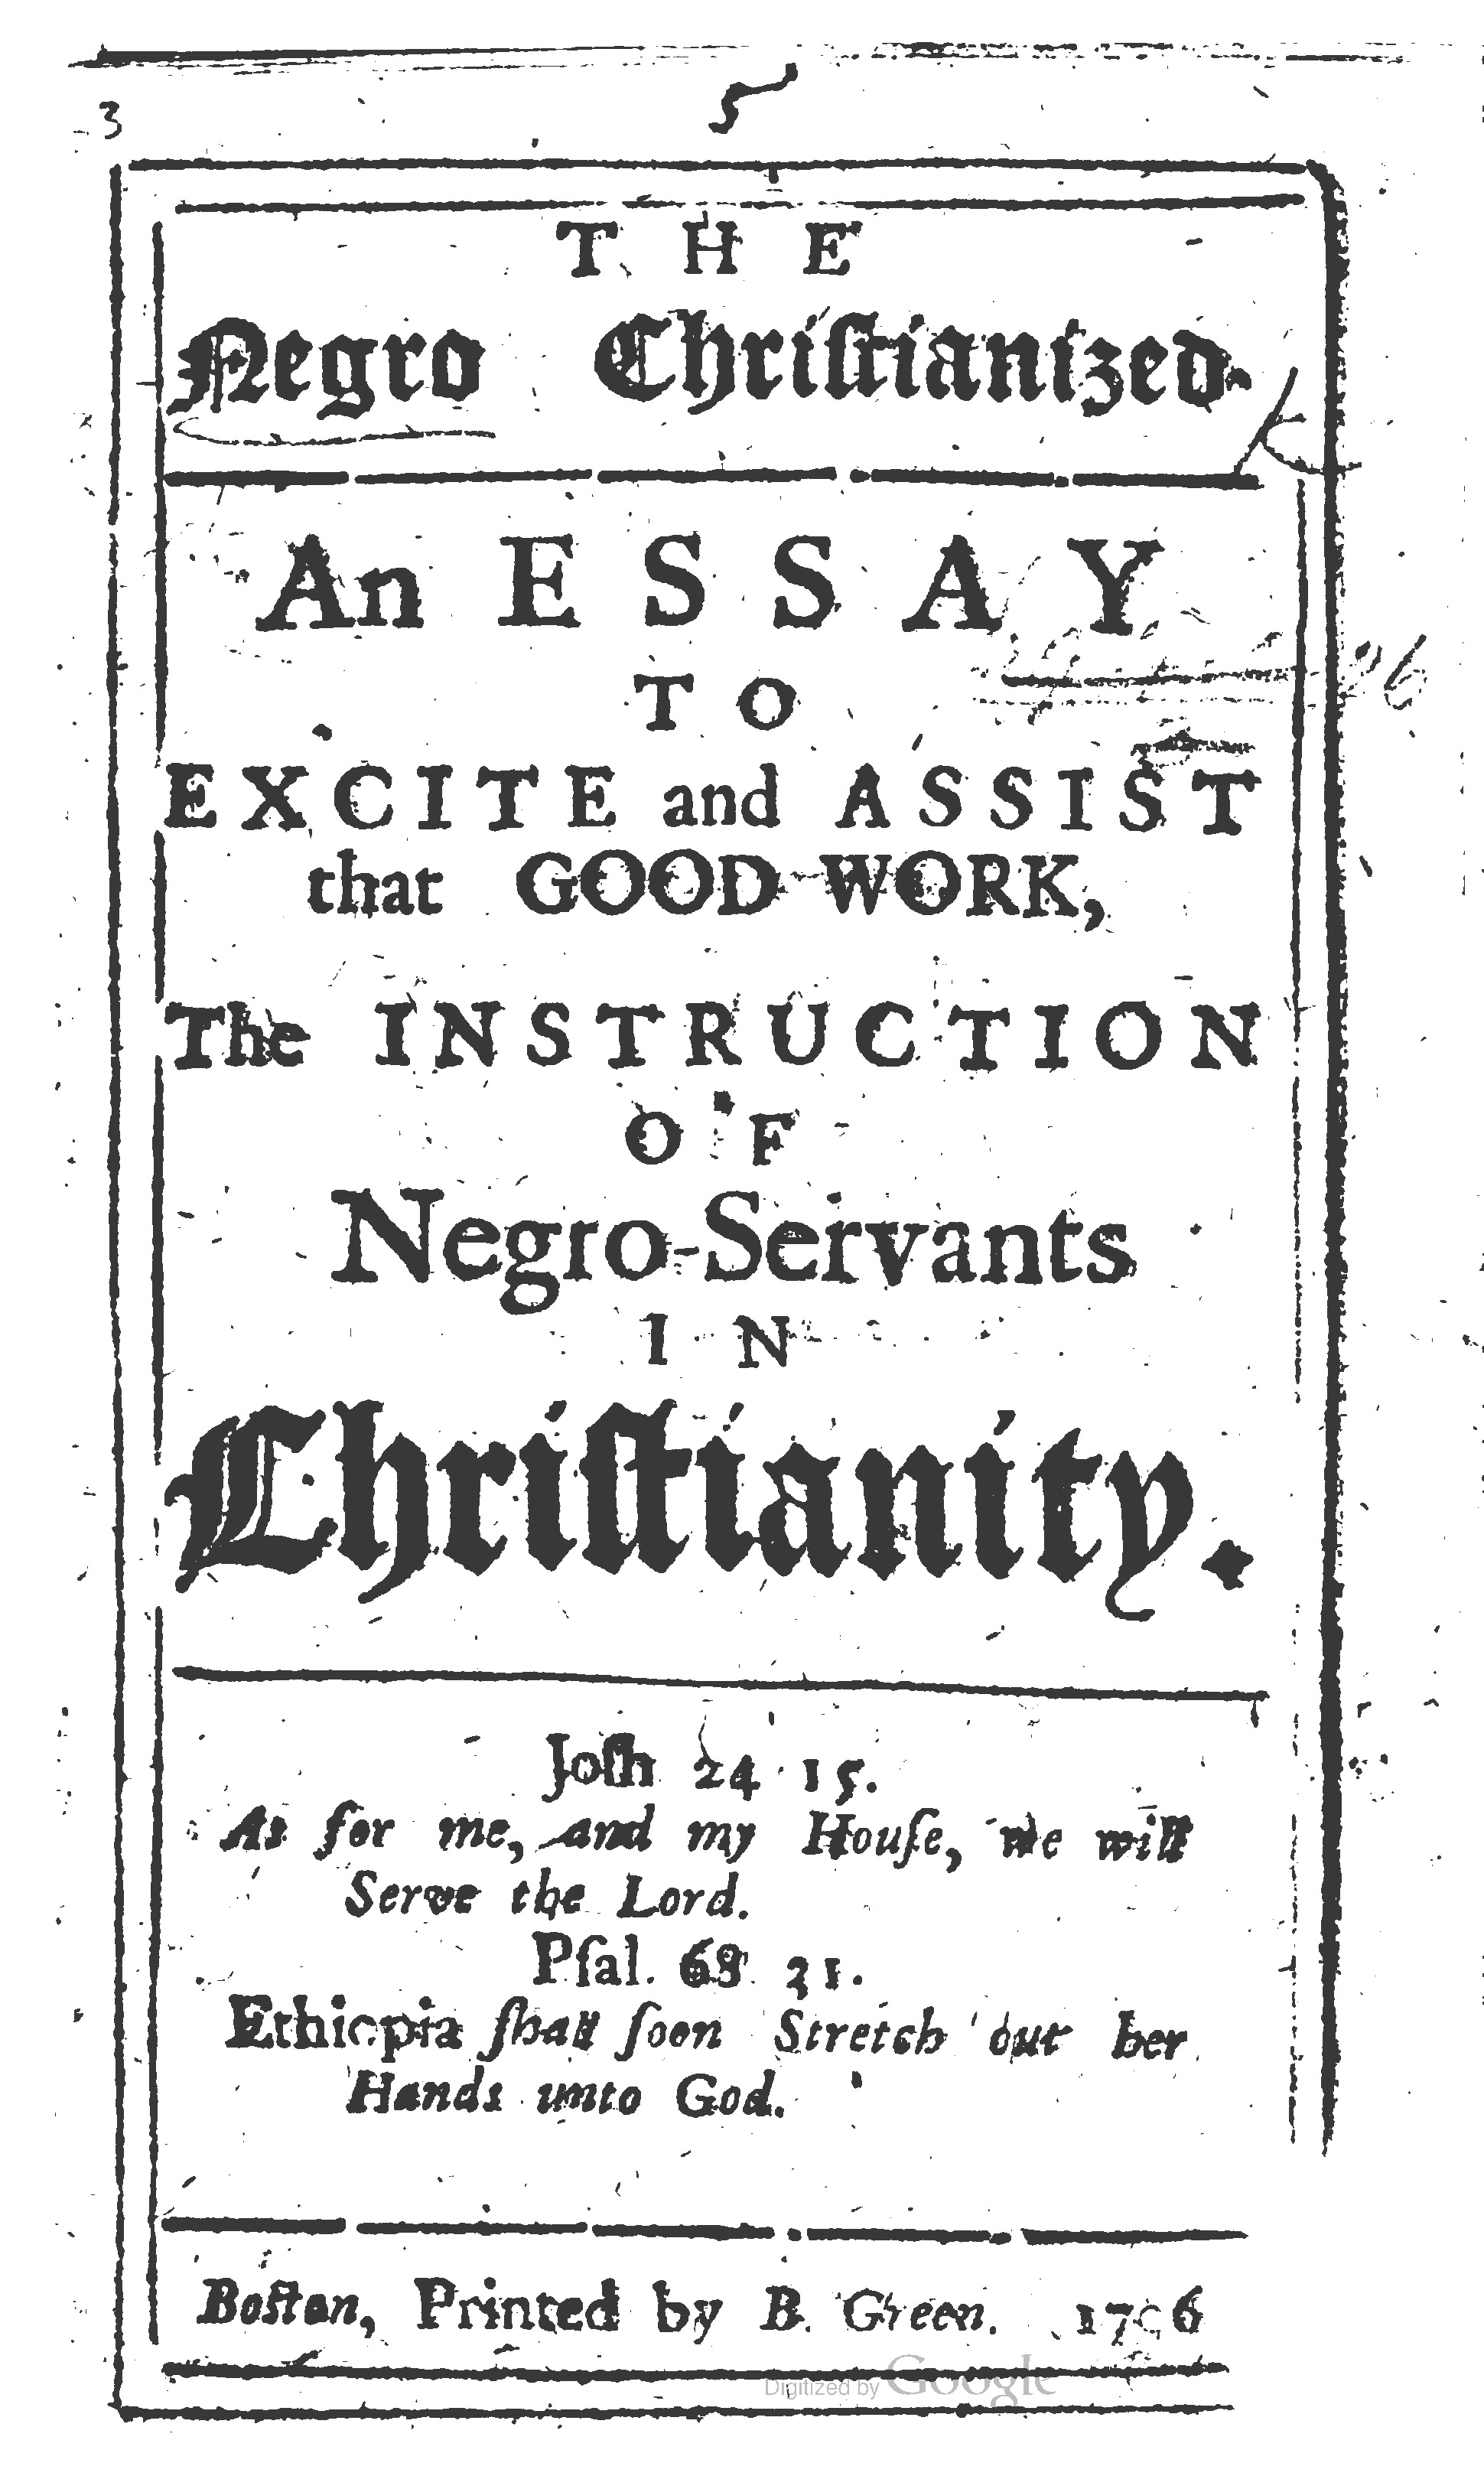 file pages from the negro christianized an essay to exci jpg  file pages from the negro christianized an essay to exci jpg